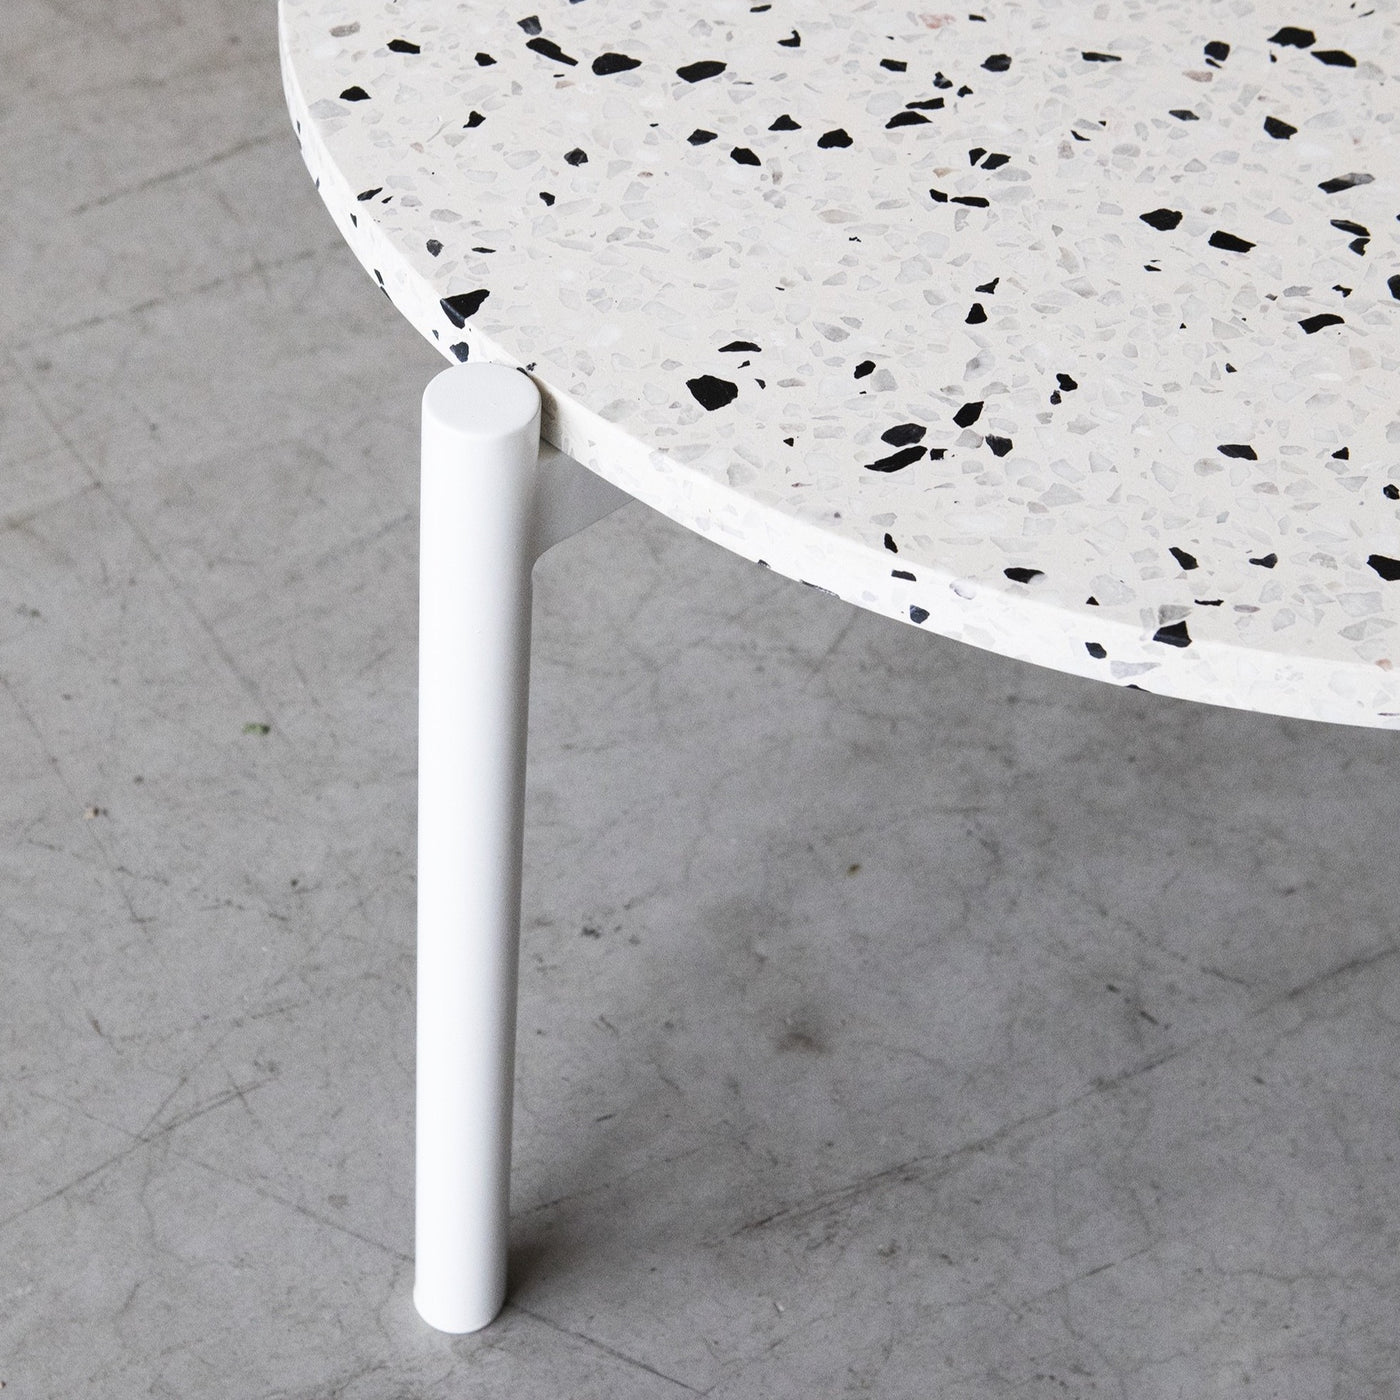 Evie nesting table large with Terrazzo top by Design Kiosk Was $990 Now $742.50